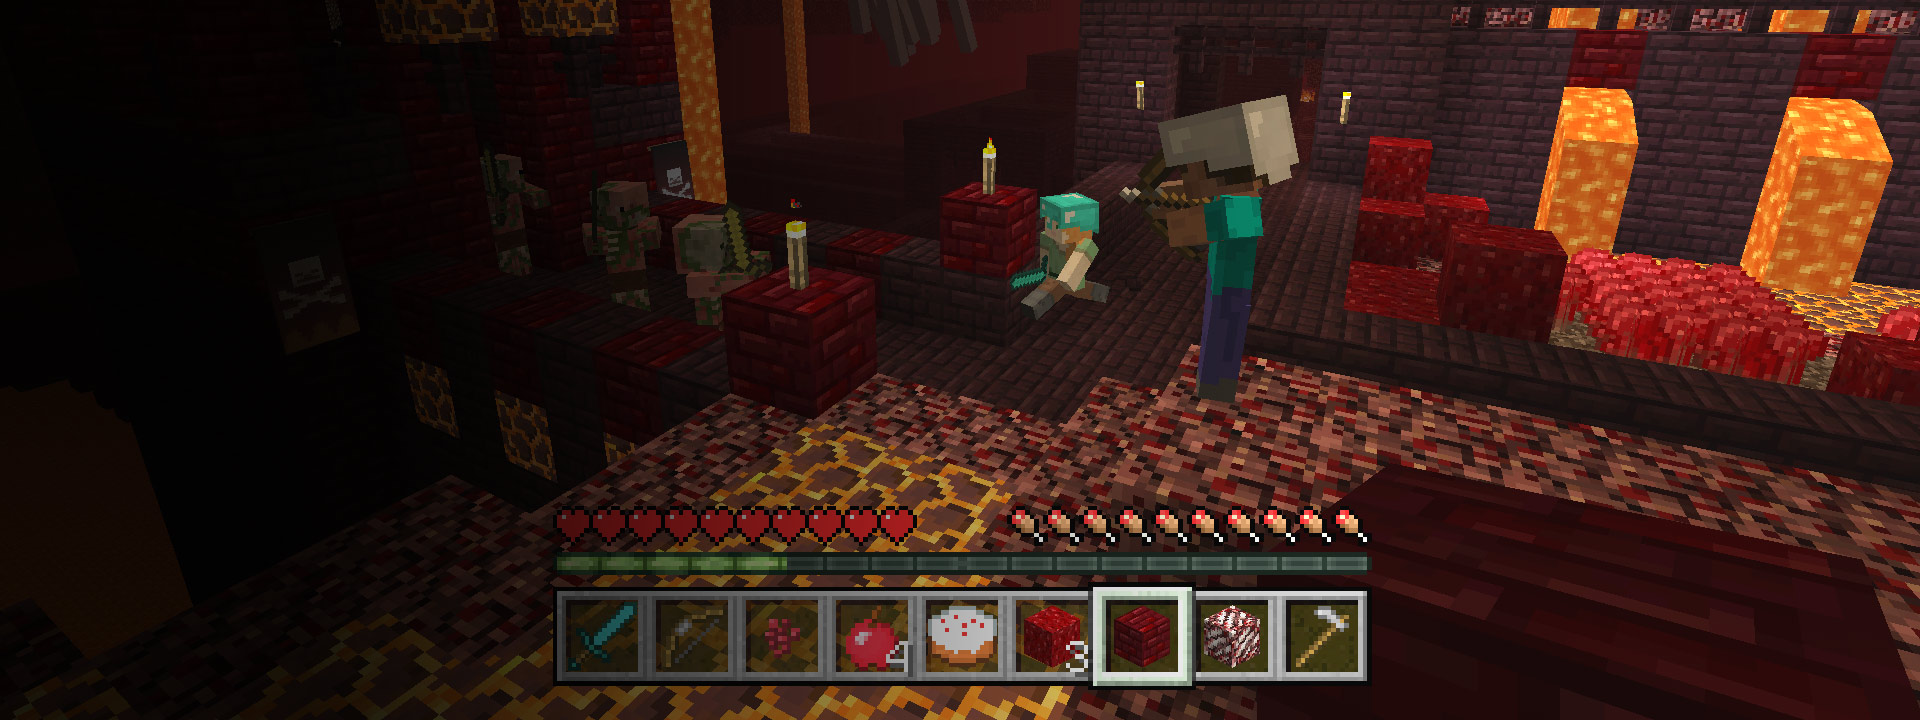 Minecraft more fun with friends